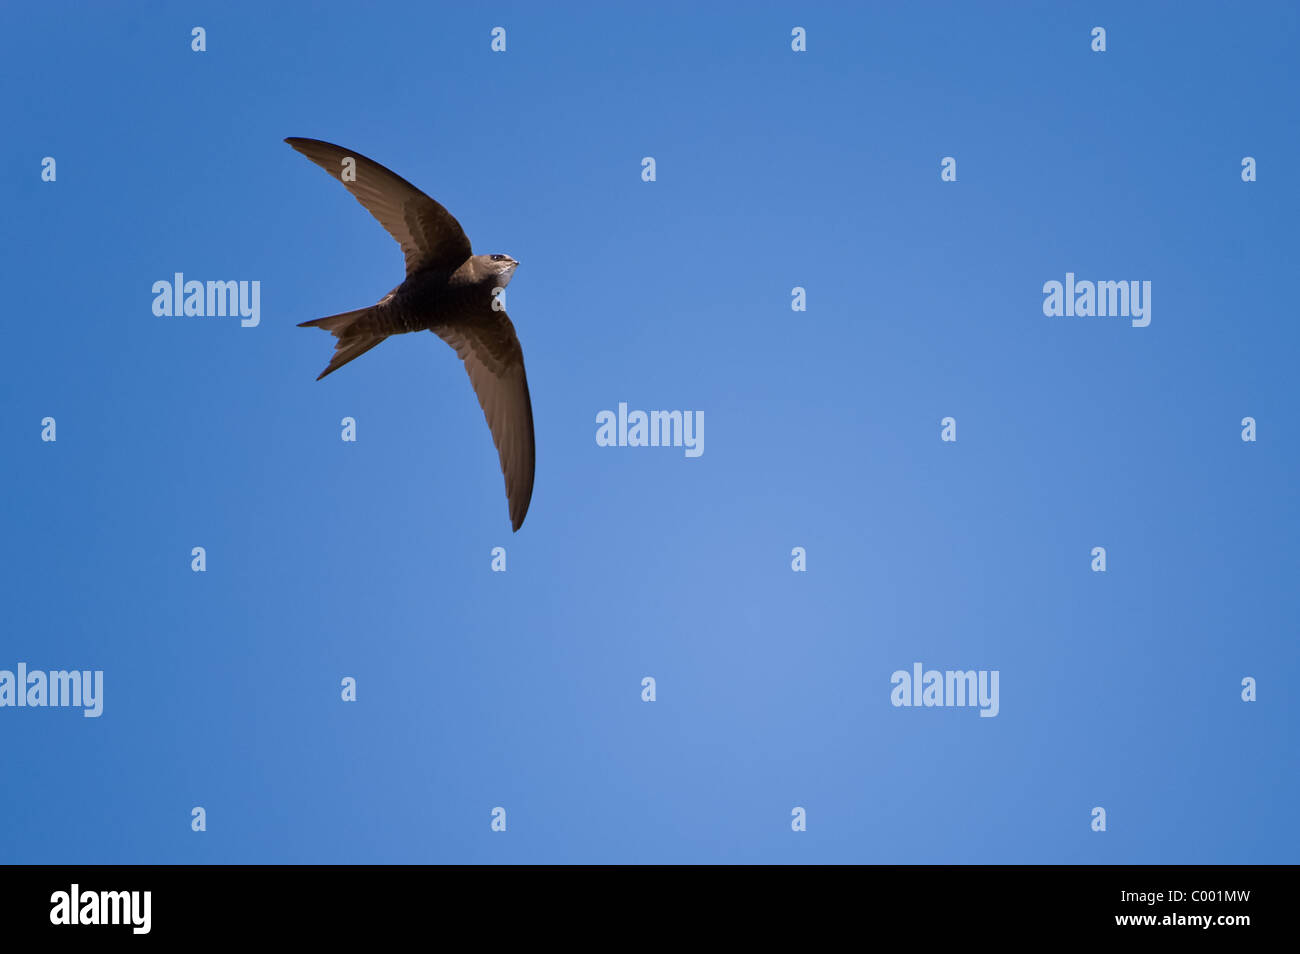 common swift, Apus apus, black martin - Stock Image